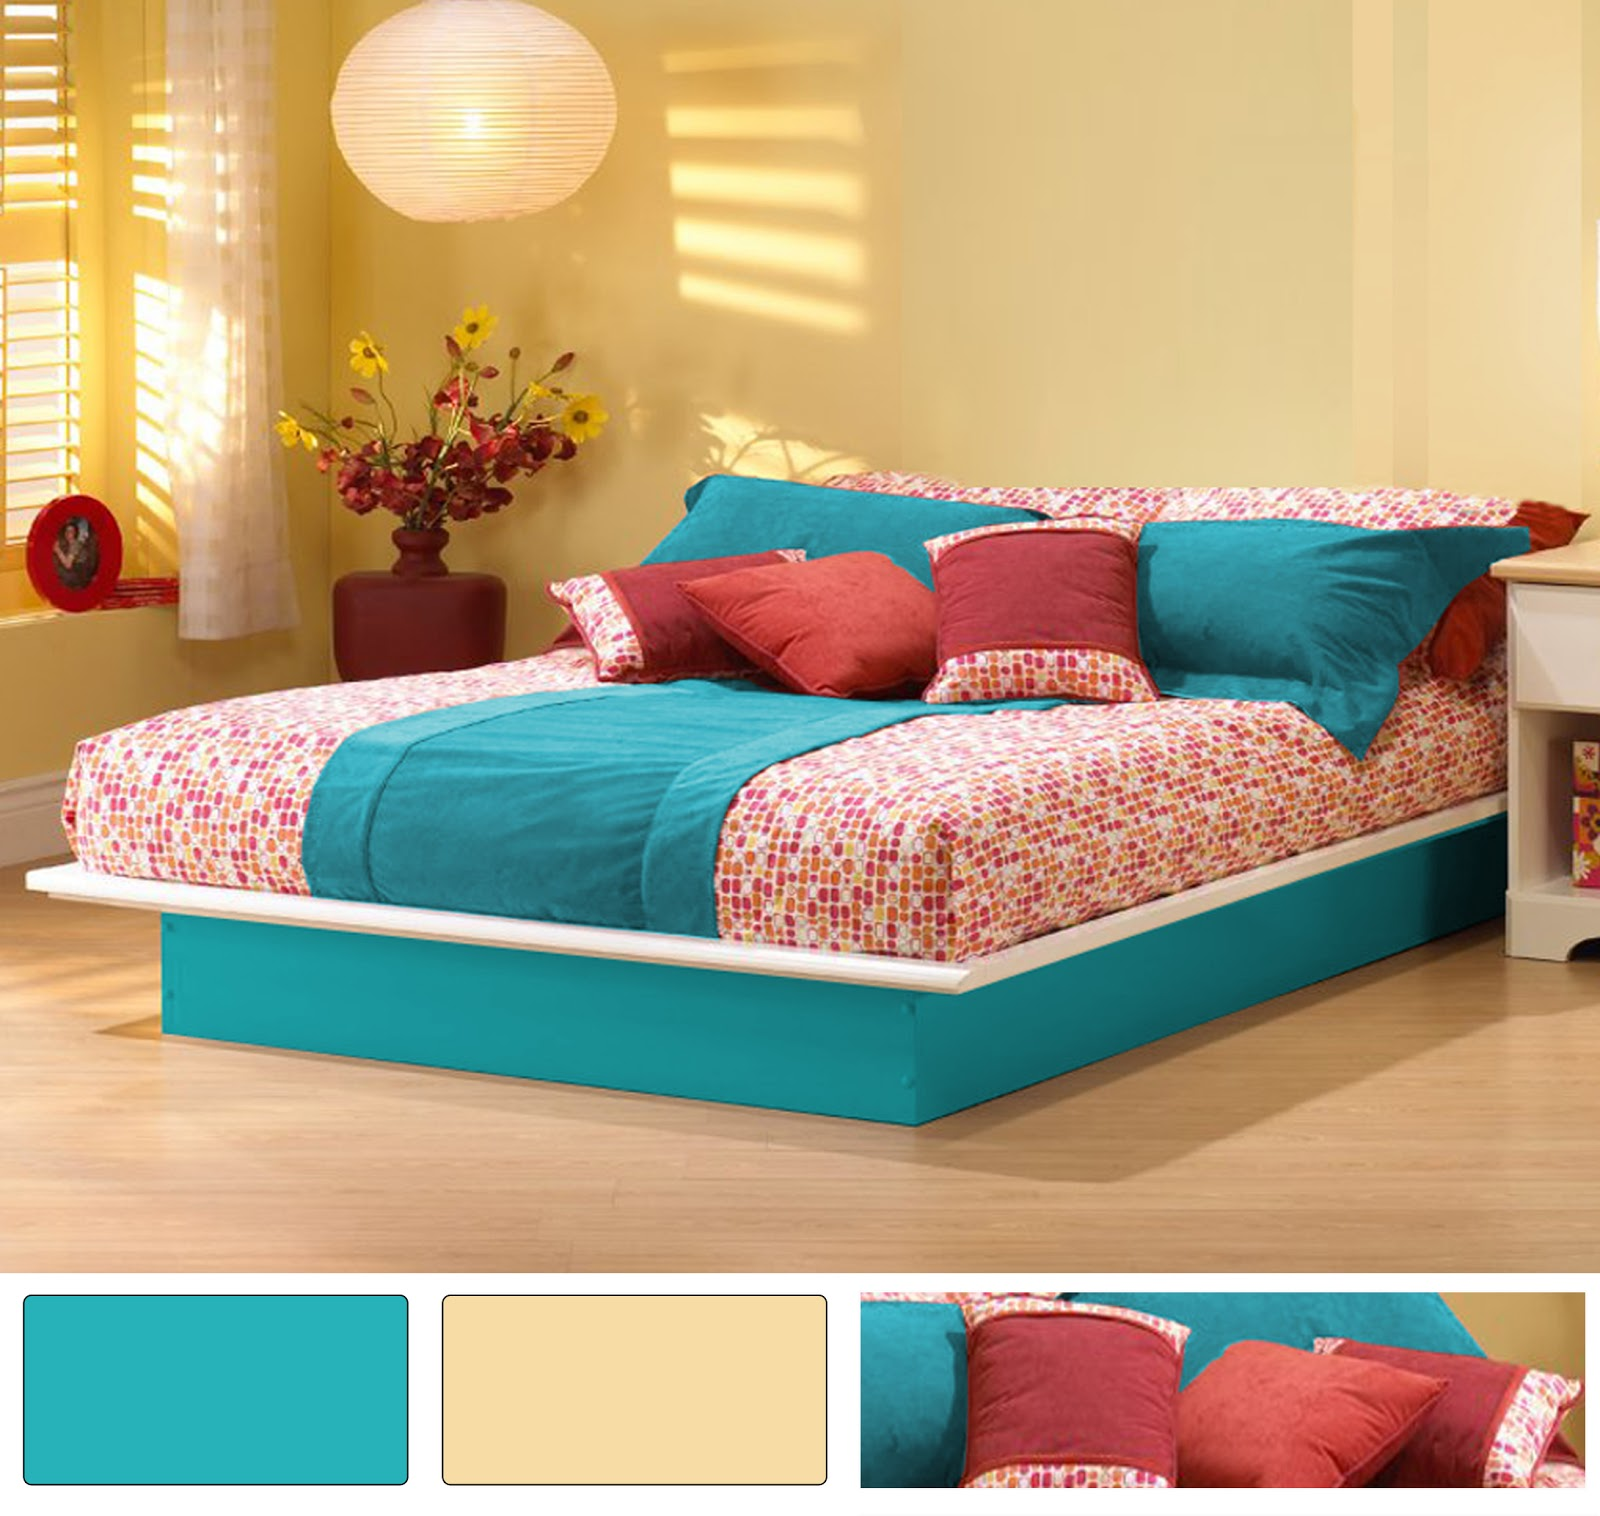 decorating ideas wall paint living rooms turquoise bedroom decors art october 2012. Black Bedroom Furniture Sets. Home Design Ideas